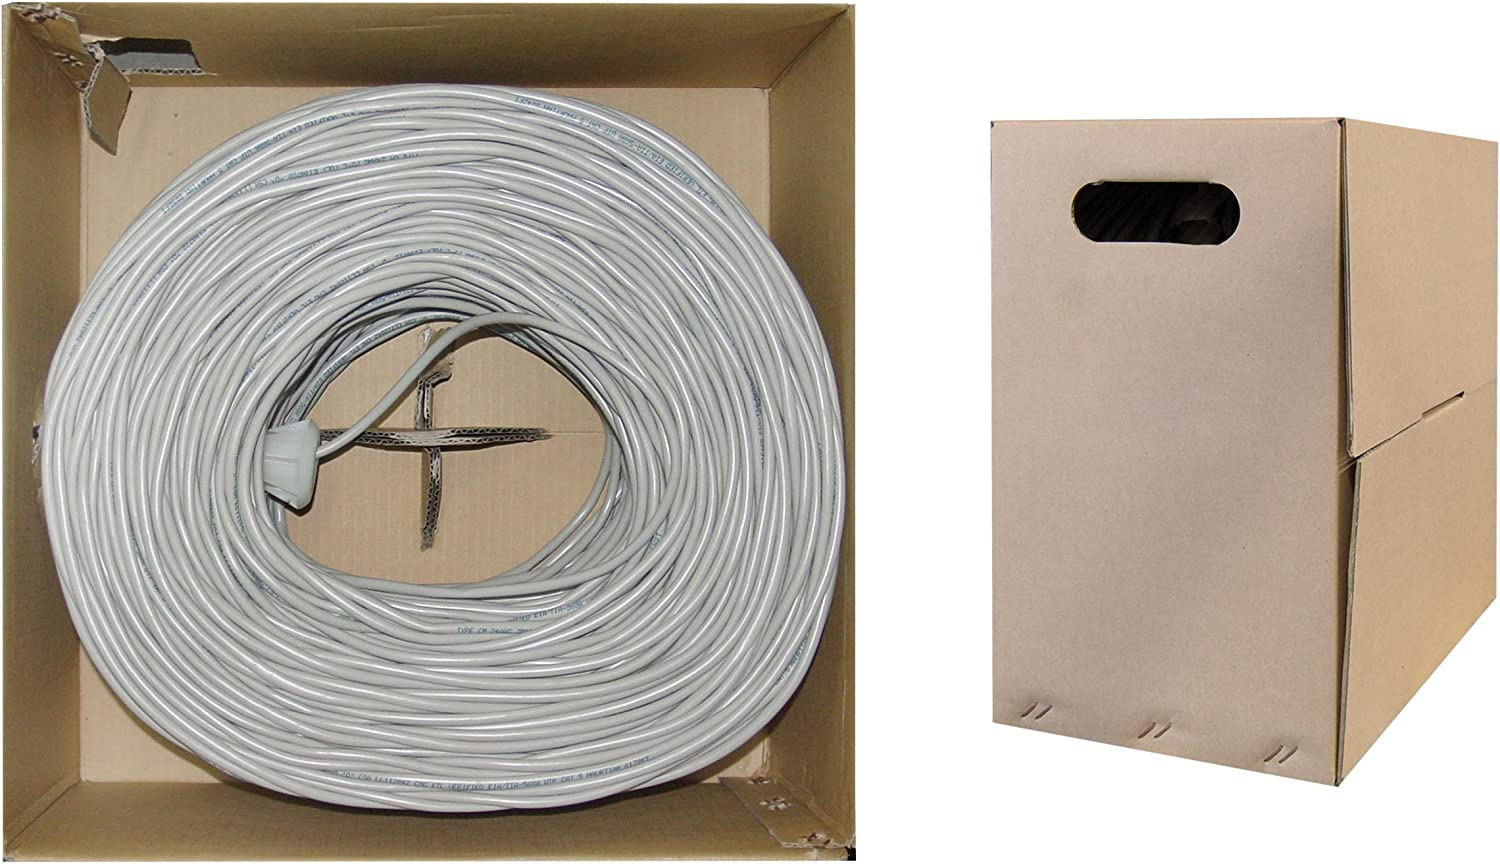 Pullbox Stranded 1pk Gray ACCL 1000ft Cat6 UTP Ethernet Cable